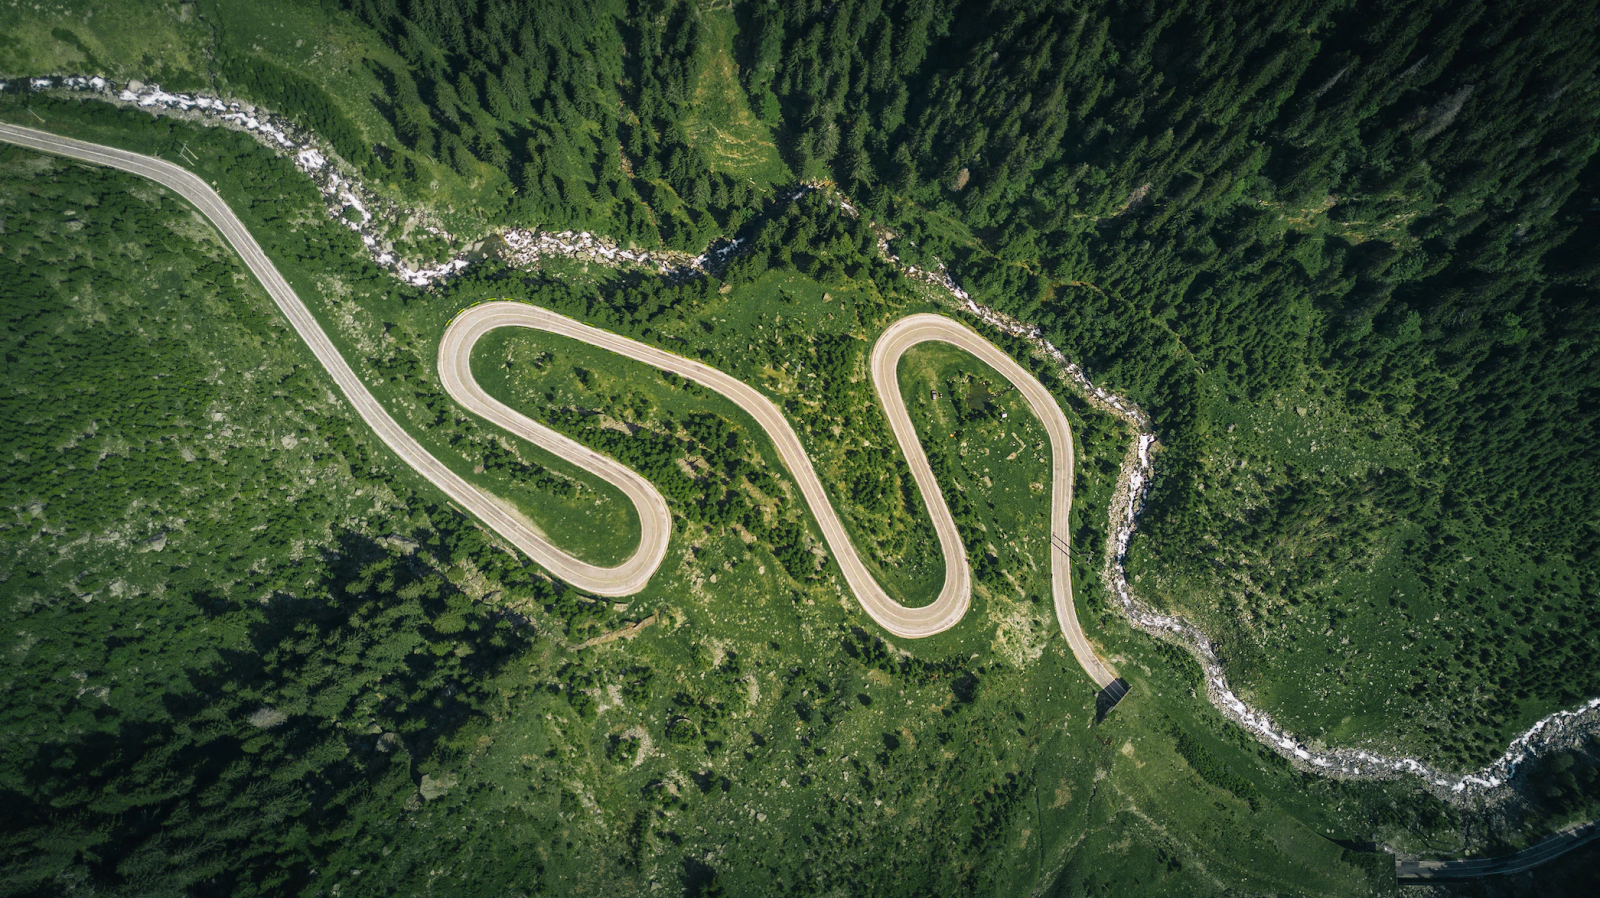 Aerial view of a winding roadway through the mountains.